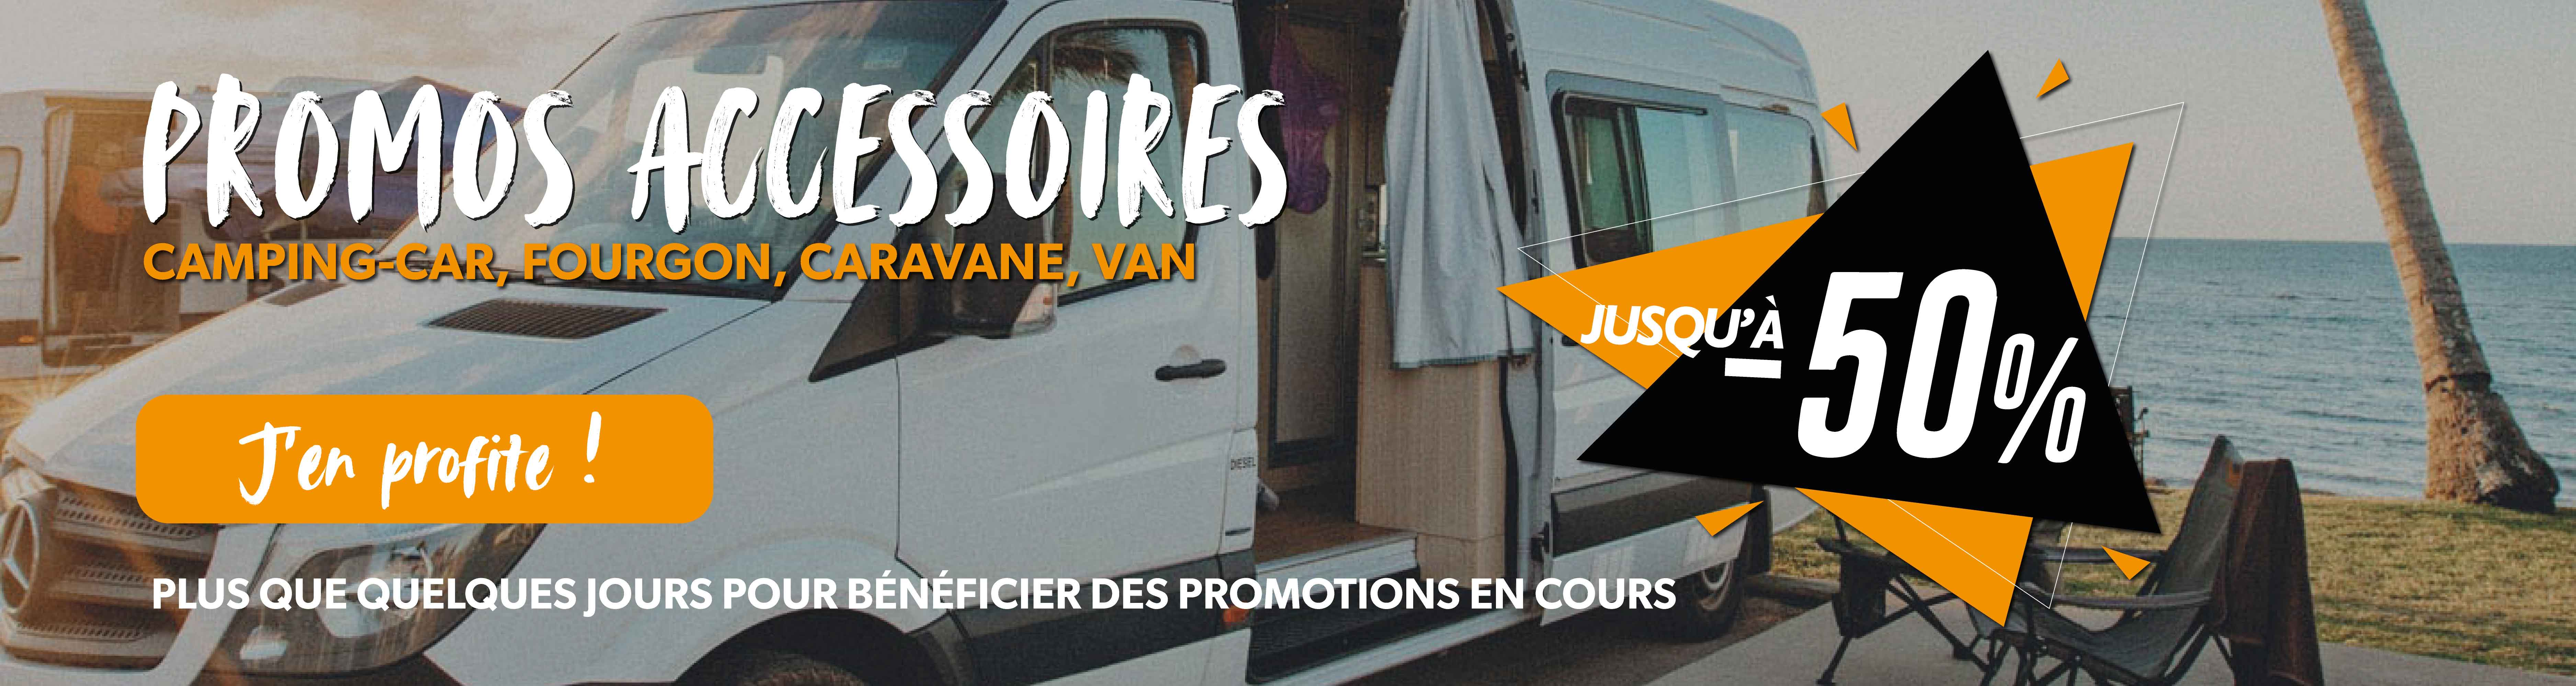 banniere-camping-car-promotions-2021-10